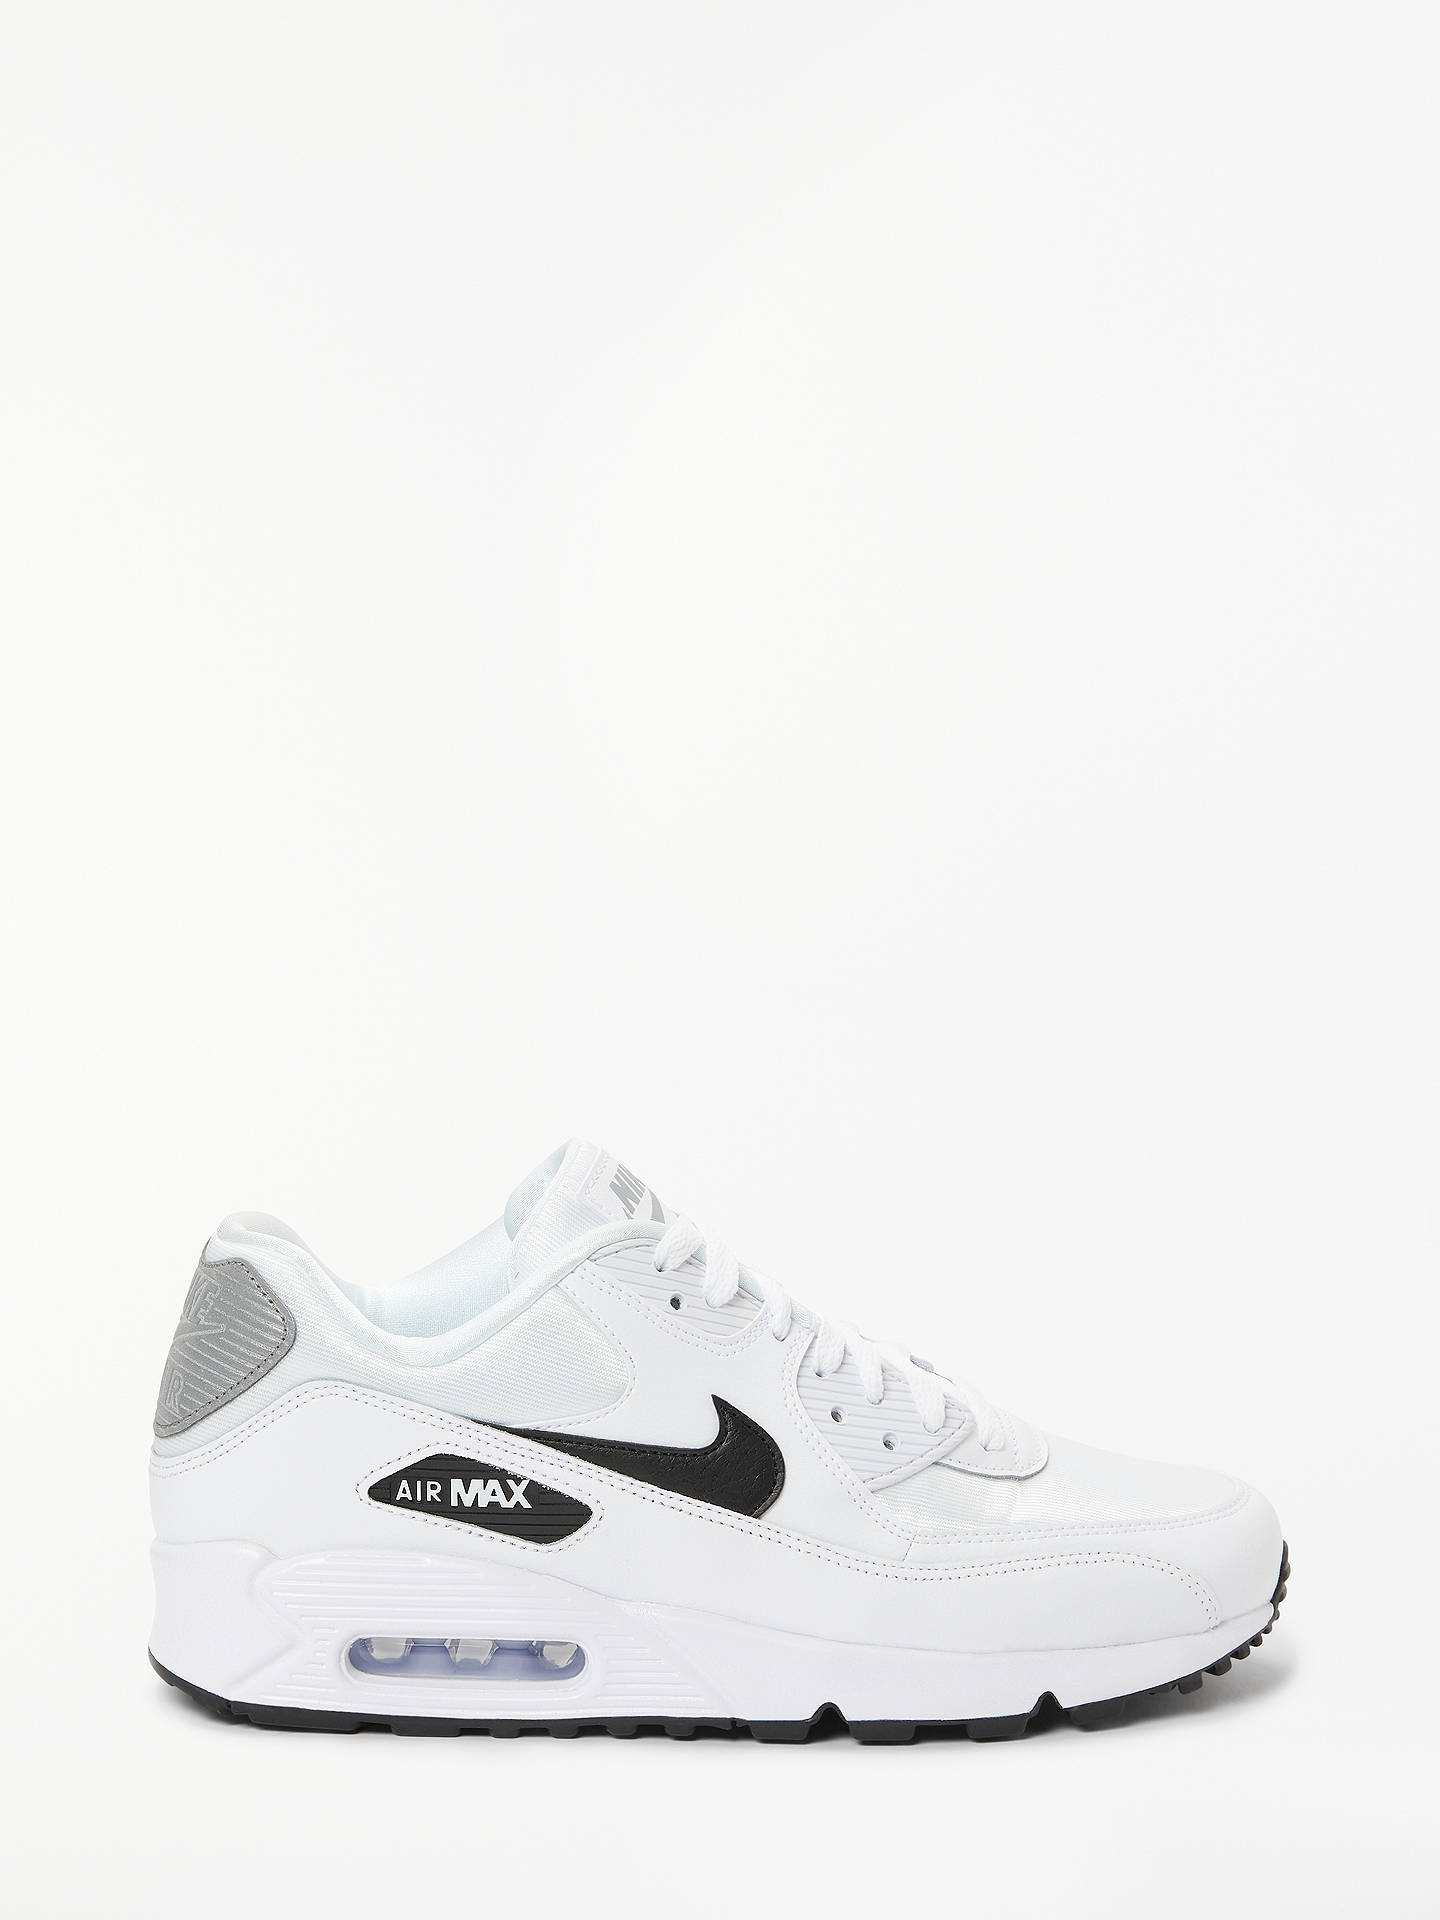 separation shoes 4e770 b633d Buy Nike Air Max 90 Women s Trainers, White Black Reflect Silver, 4 ...